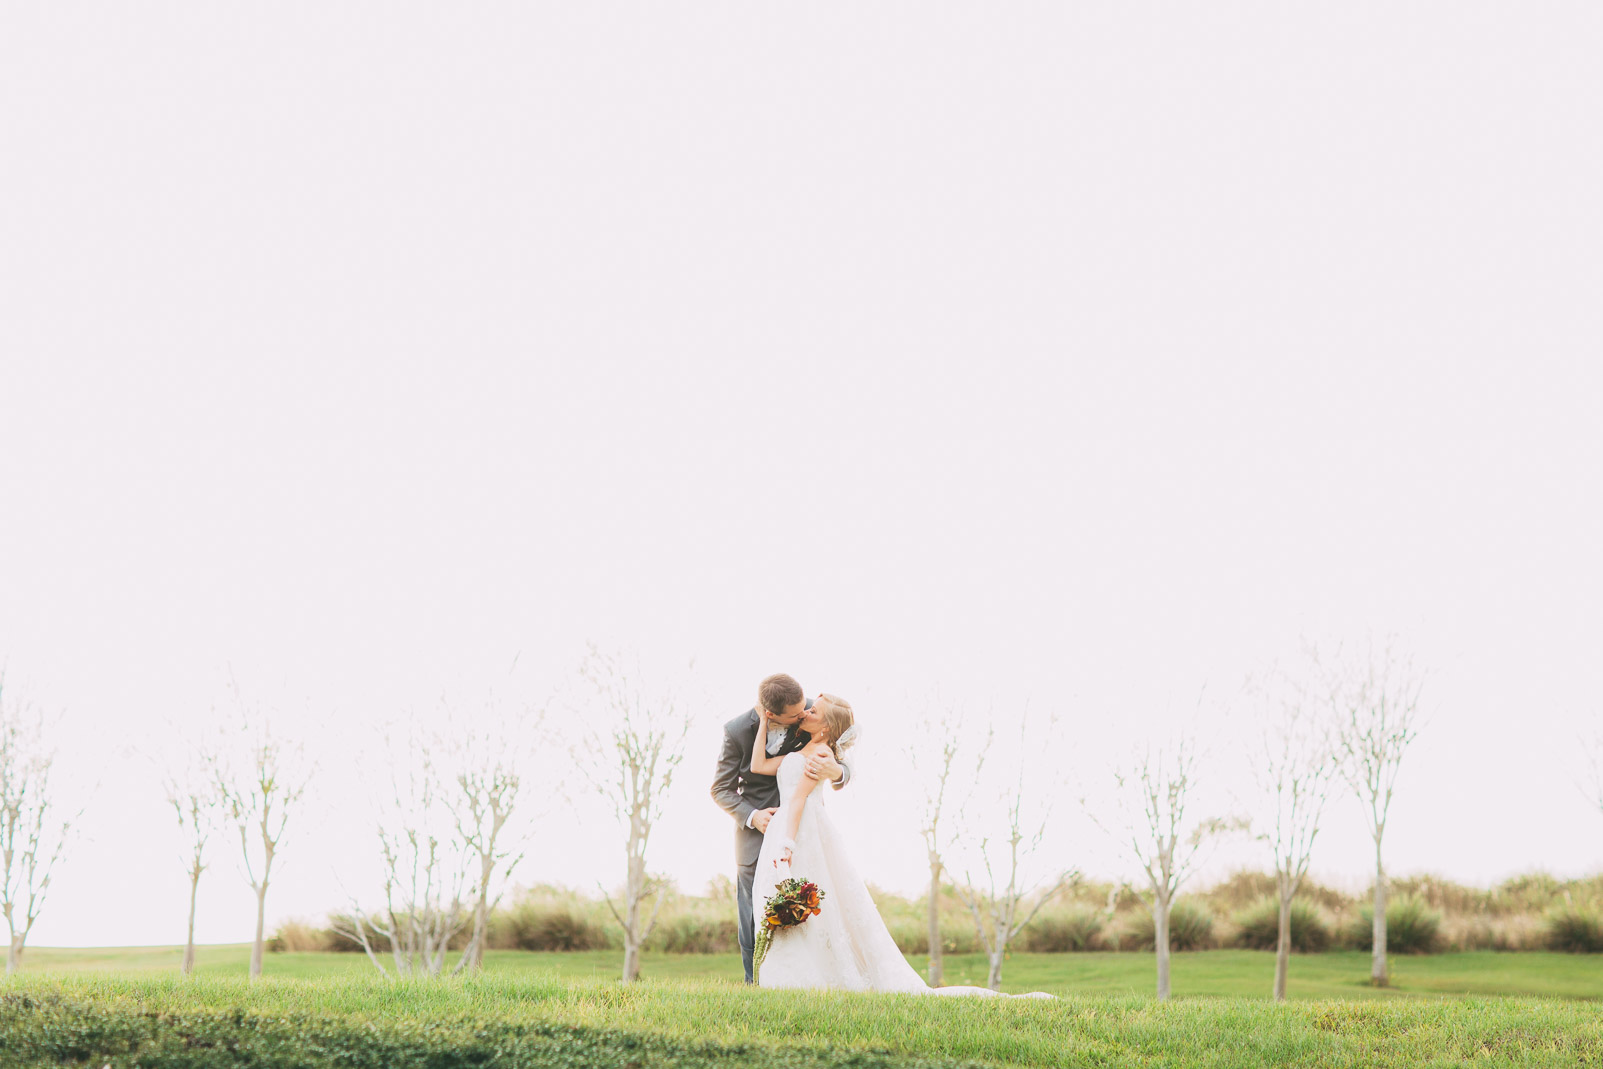 alyssa_austin_wedding_blog-edit